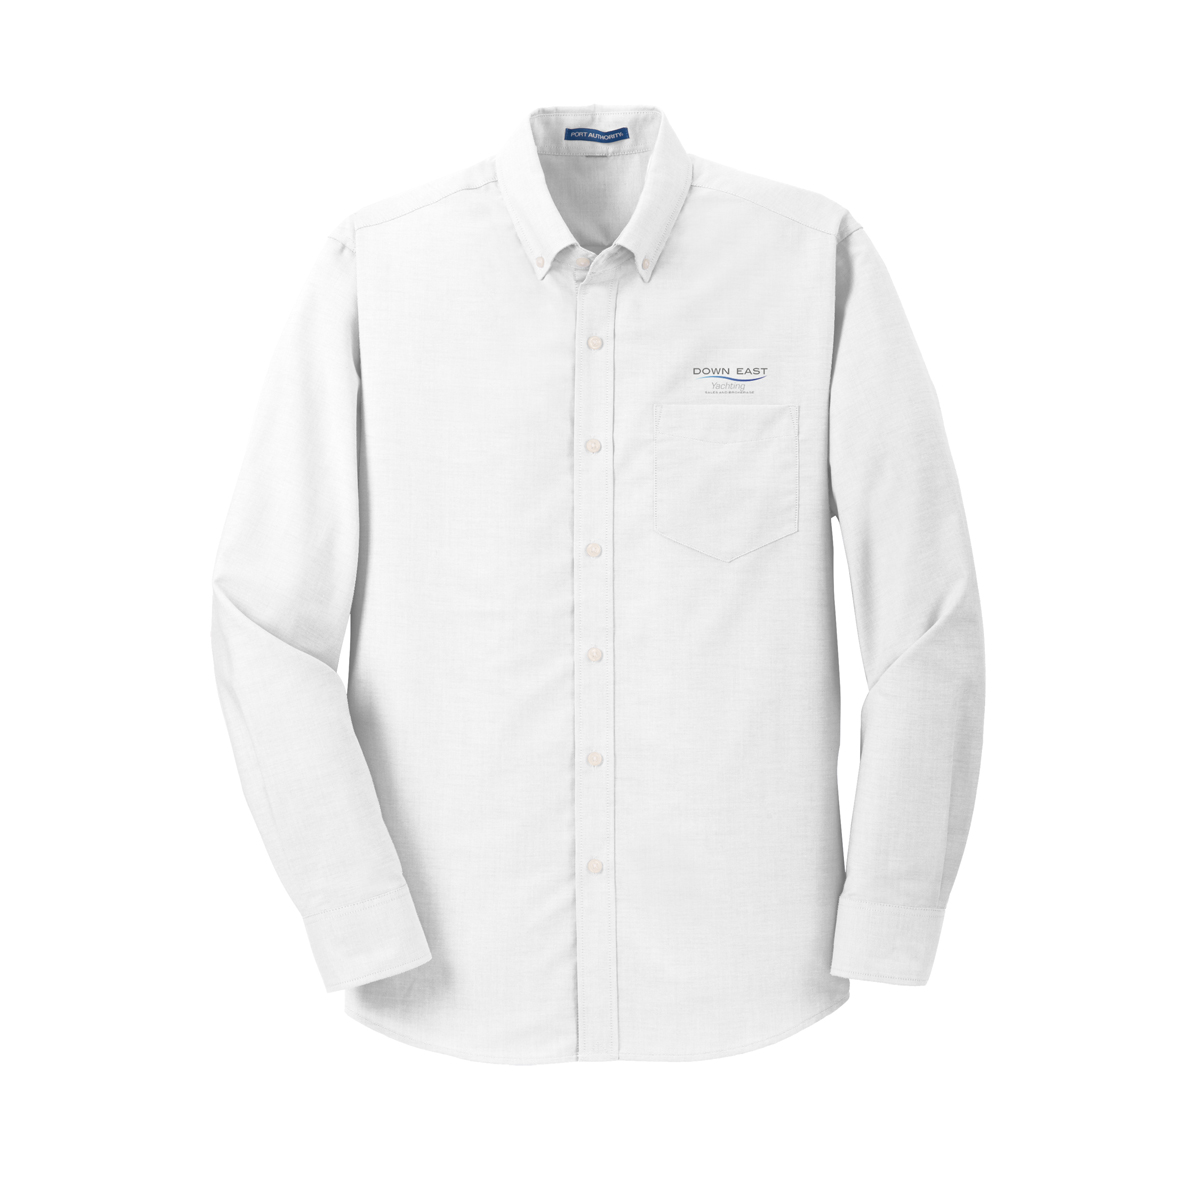 DOWN EAST YACHTING - M'S OXFORD SHIRT